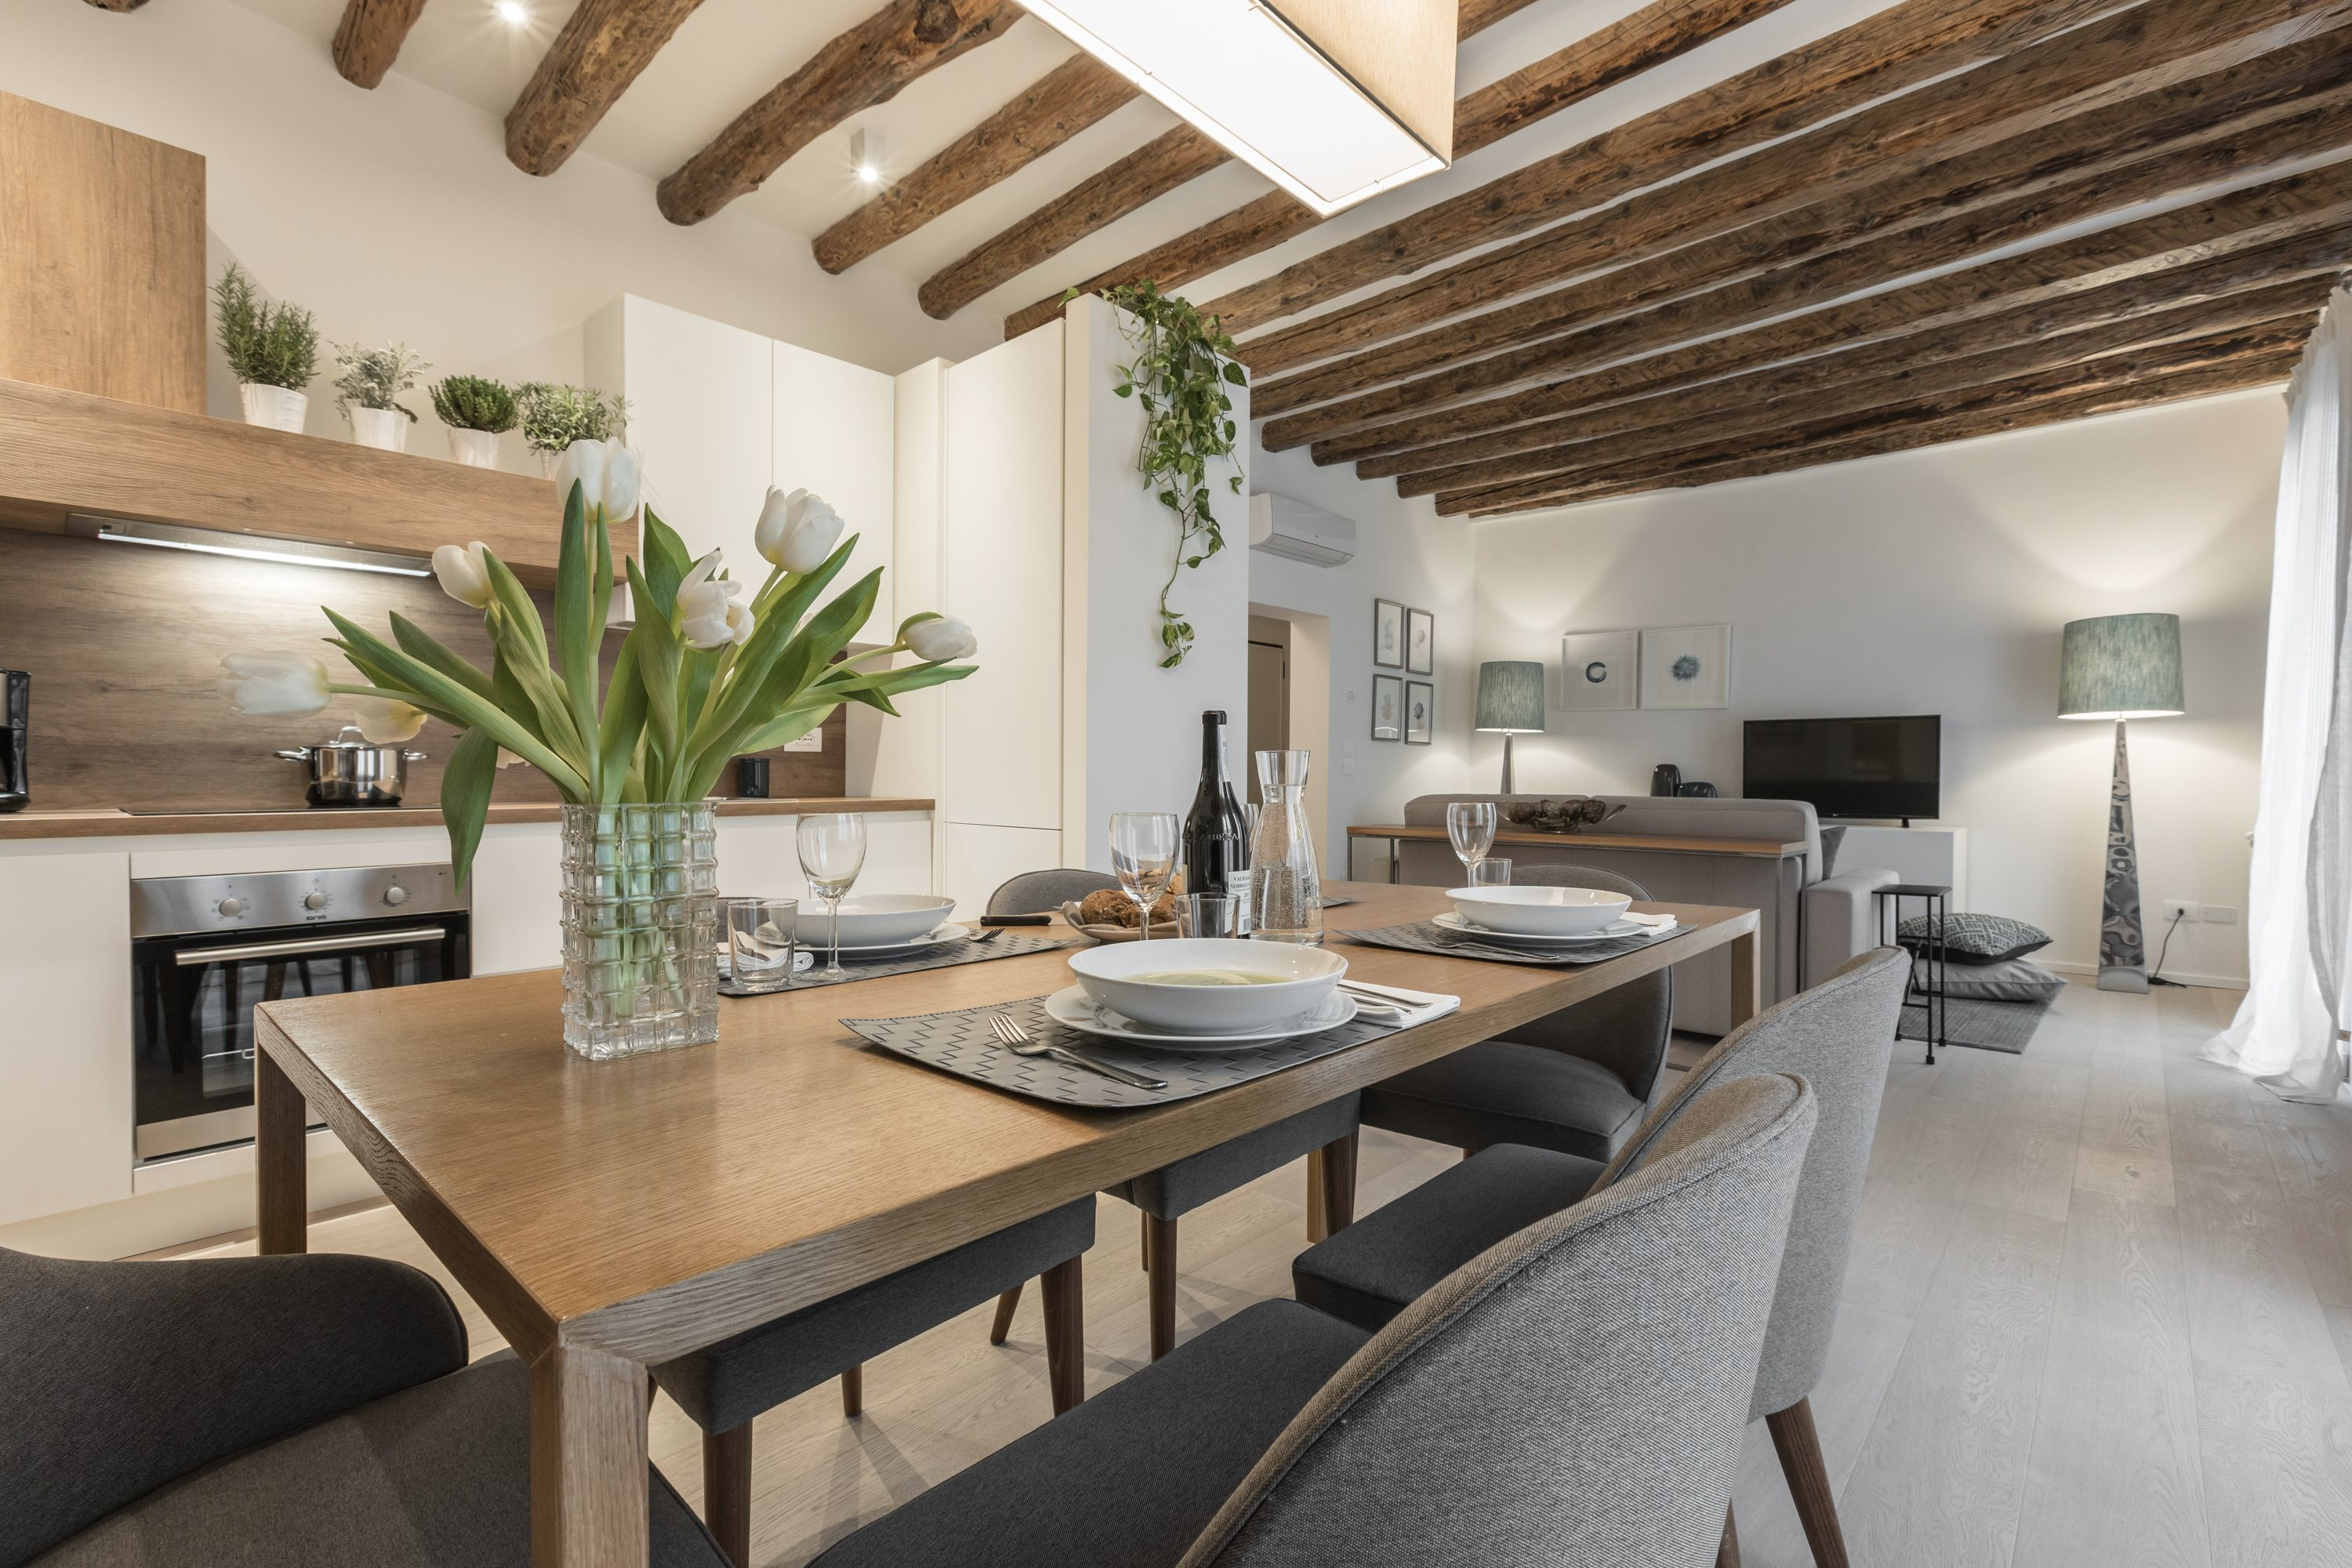 nice parquet flooring and antique wooden beamed ceiling confer warmth to the ambience